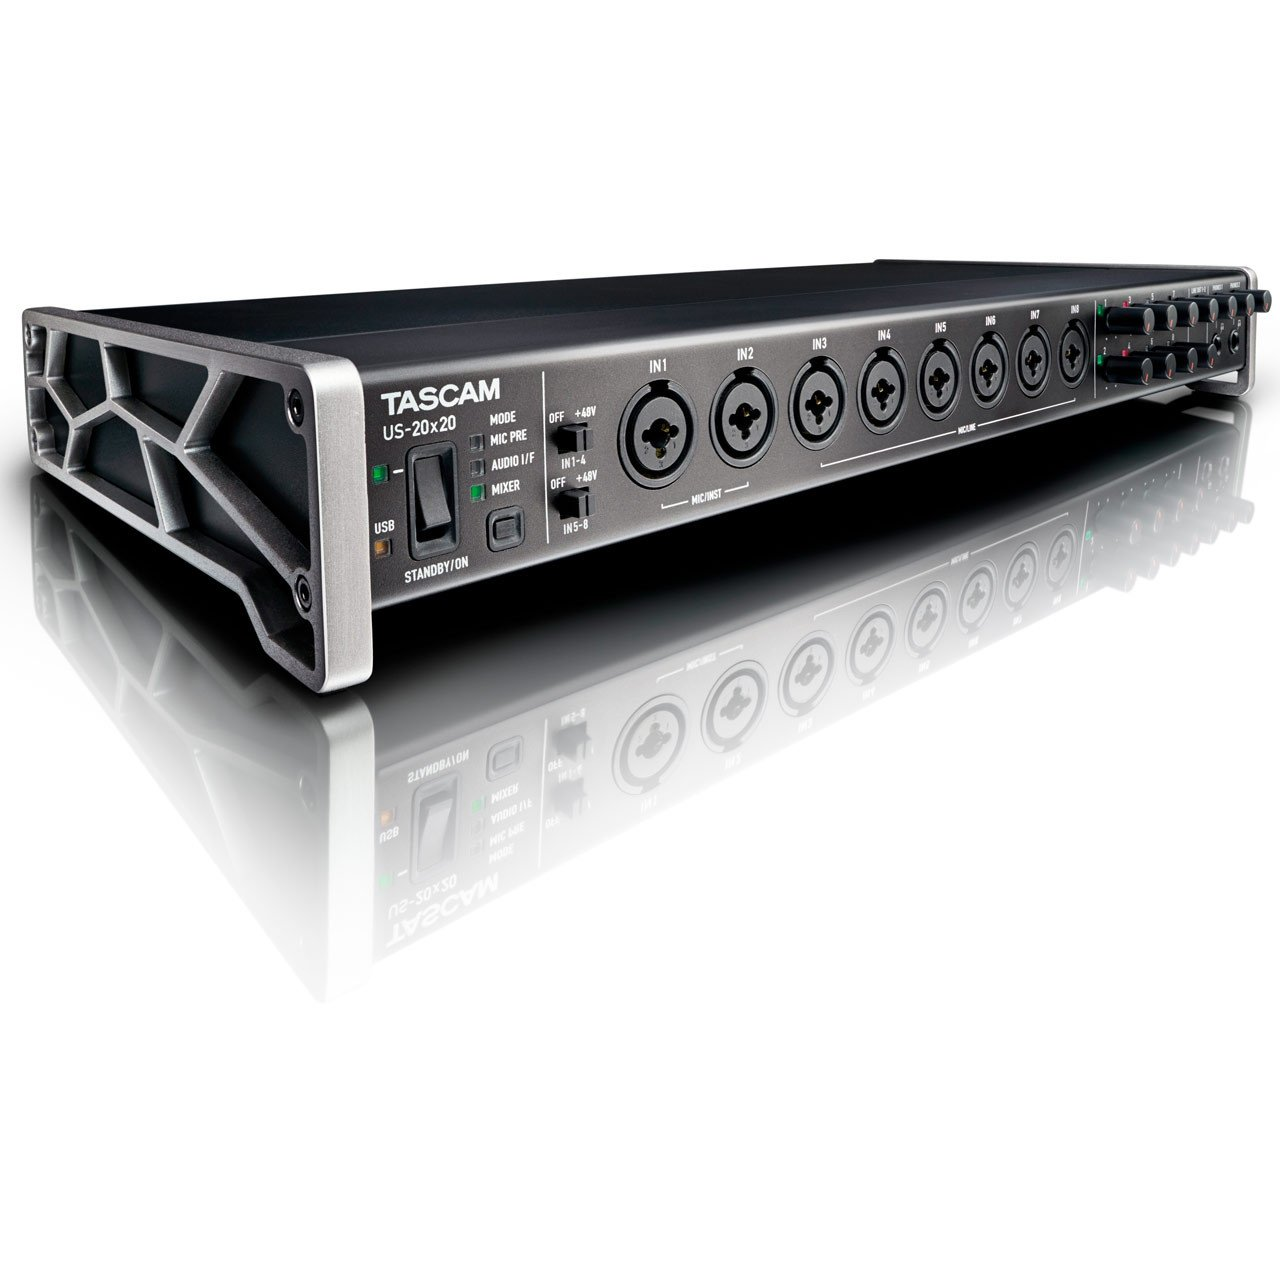 USB Audio Interfaces - TASCAM US-20x20 USB 3.0 Audio MIDI Interface With Mic Pre/Mixer